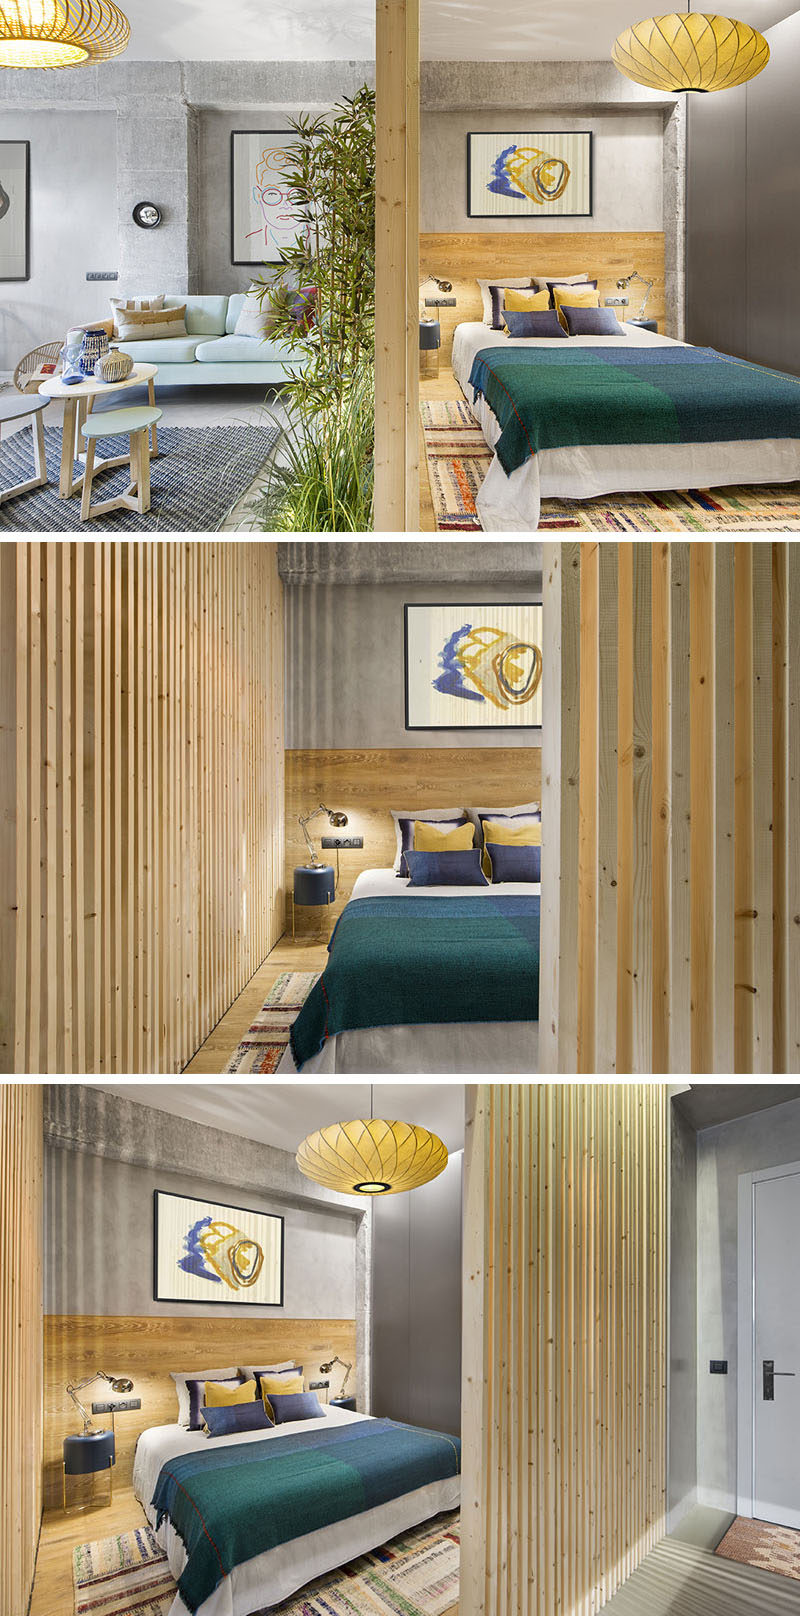 Egue y Seta designed a small apartment with wood slat walls for the bedroom that allow the light to travel through and make the interior feel larger. #WoodSlats #WoodWalls #InteriorDesign #Bedroom